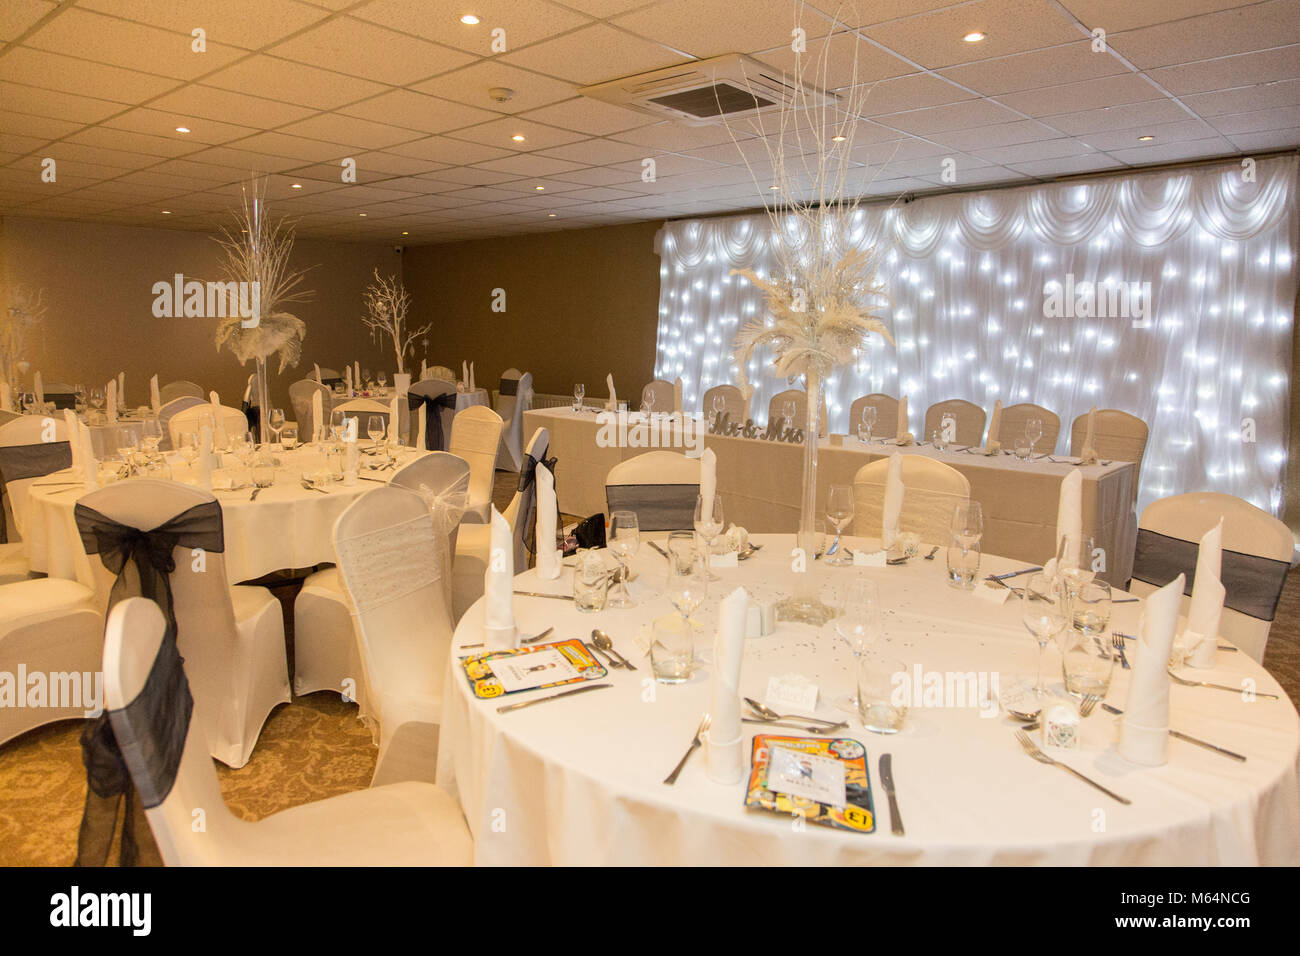 Winter wonderland wedding reception room - Stock Image & Wedding Breakfast Top Table Settings Stock Photos \u0026 Wedding ...